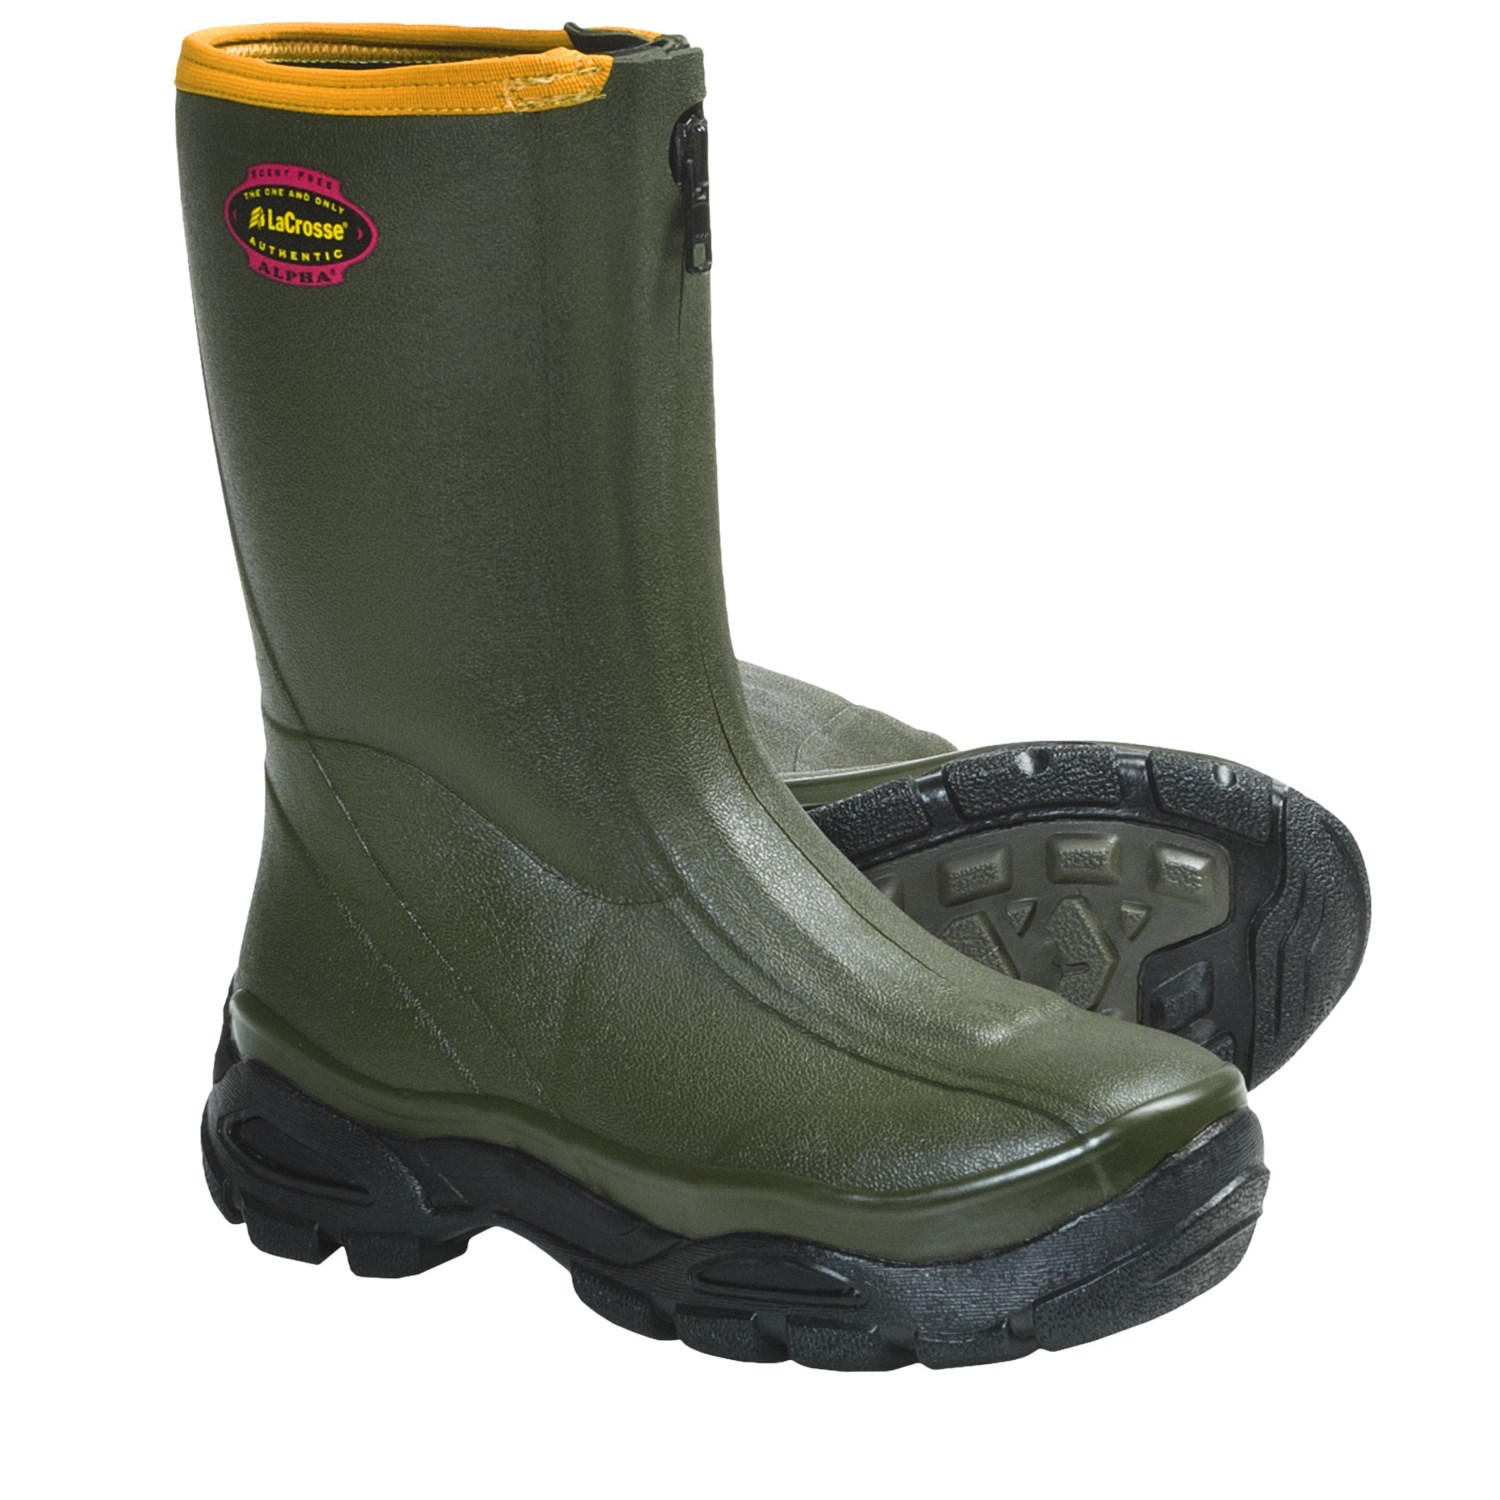 LaCrosse Alphaburly Sport Front-Zip Rubber Hunting Boots ...